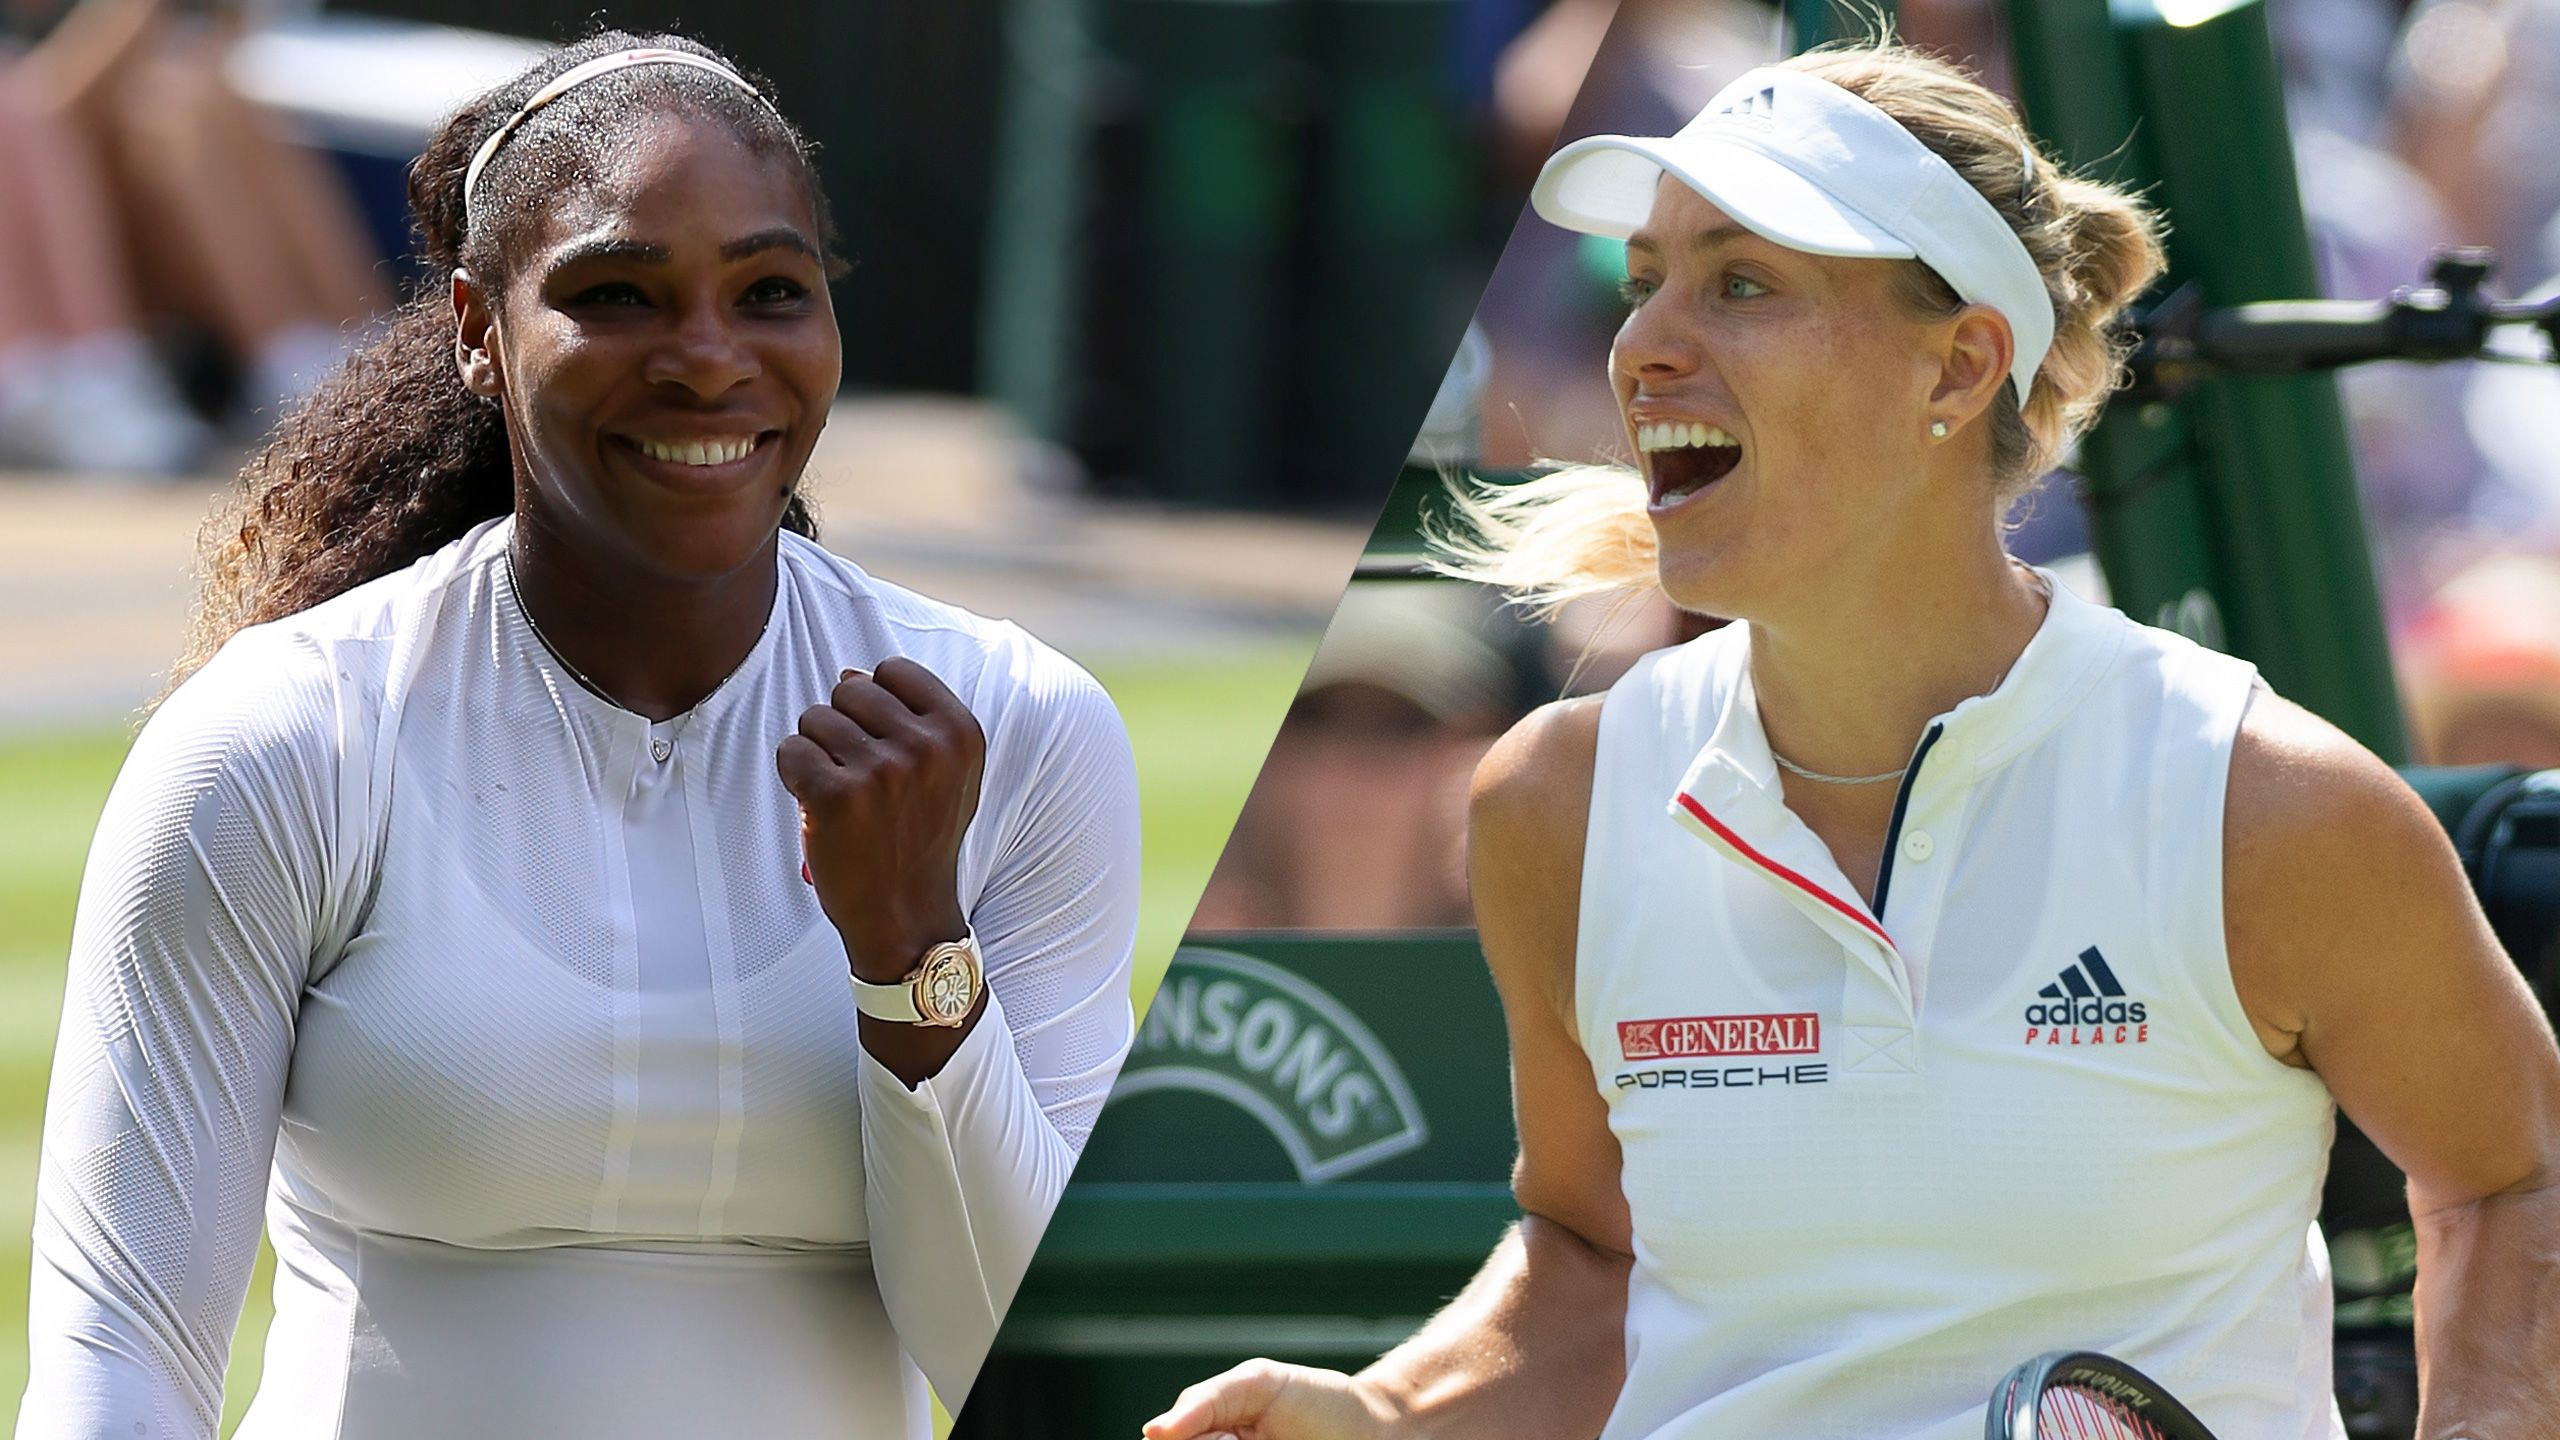 (25) S. Williams vs. (11) Kerber (Ladies' Final)